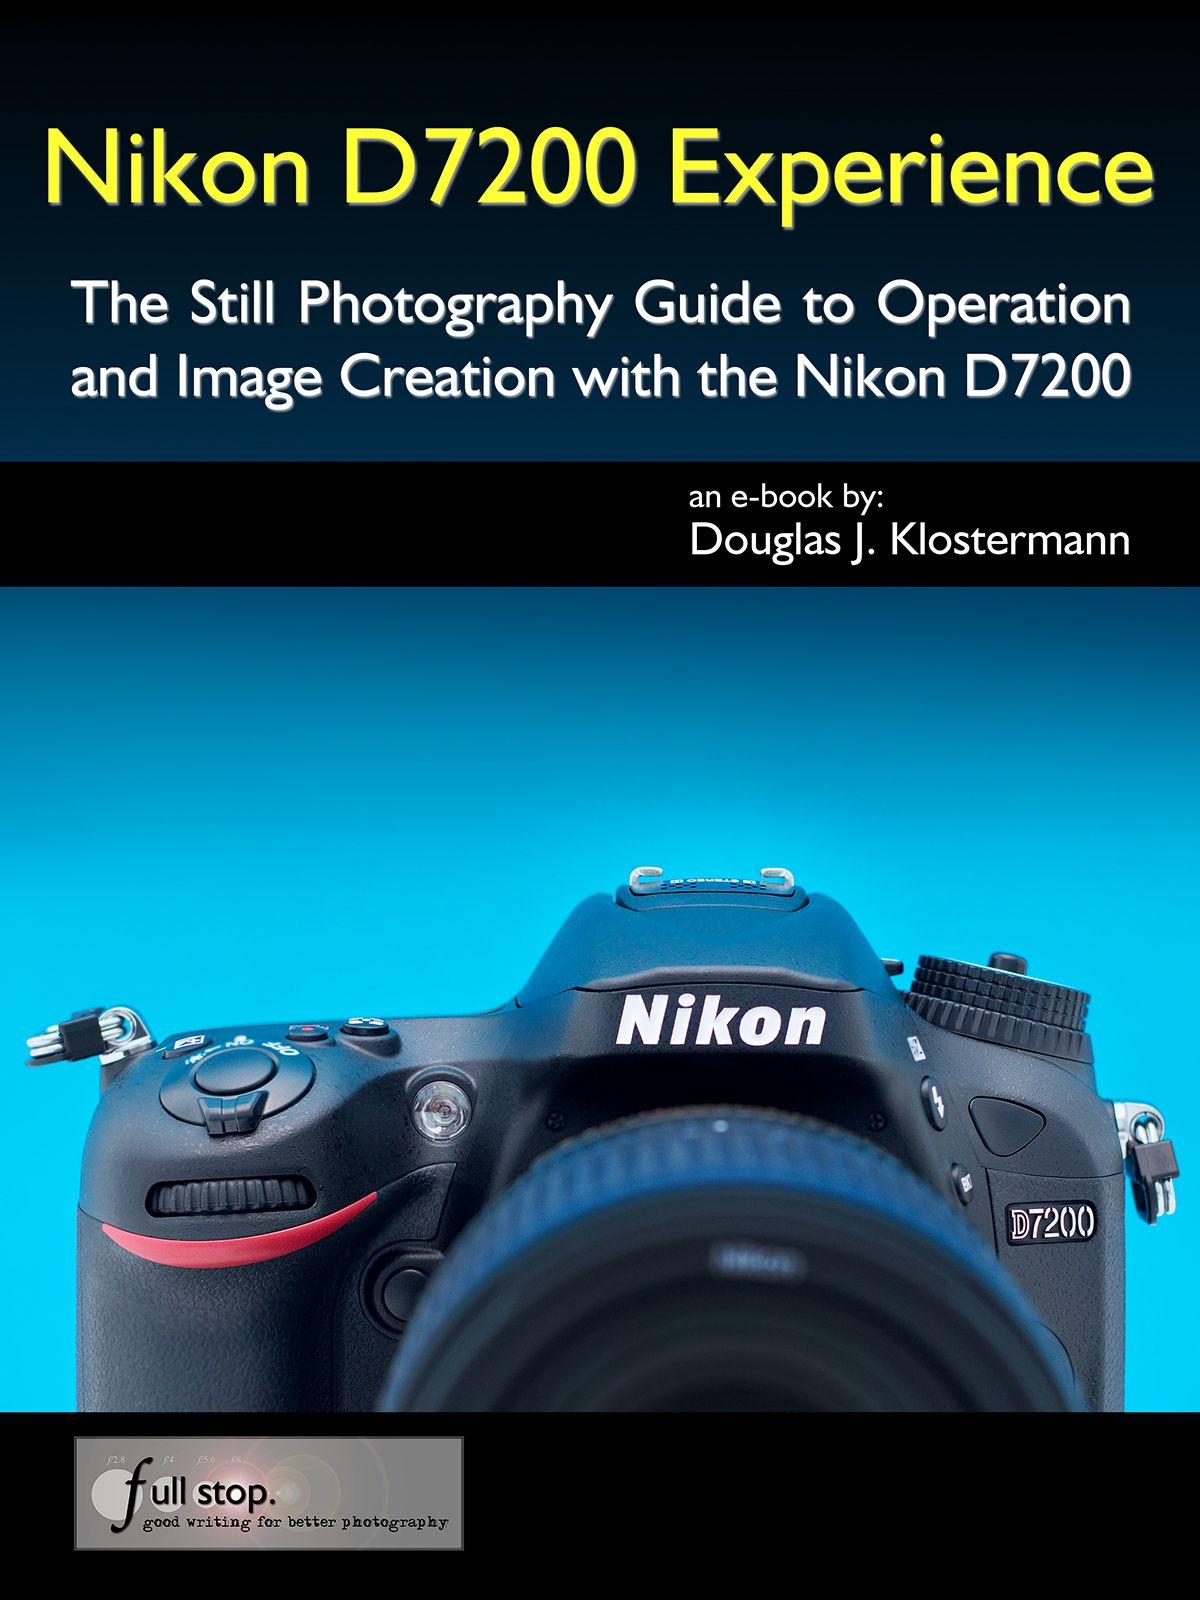 Nikon D800 Settings Spreadsheet Intended For Nikon D7200 Experience  The Still Photography Guide To Operation